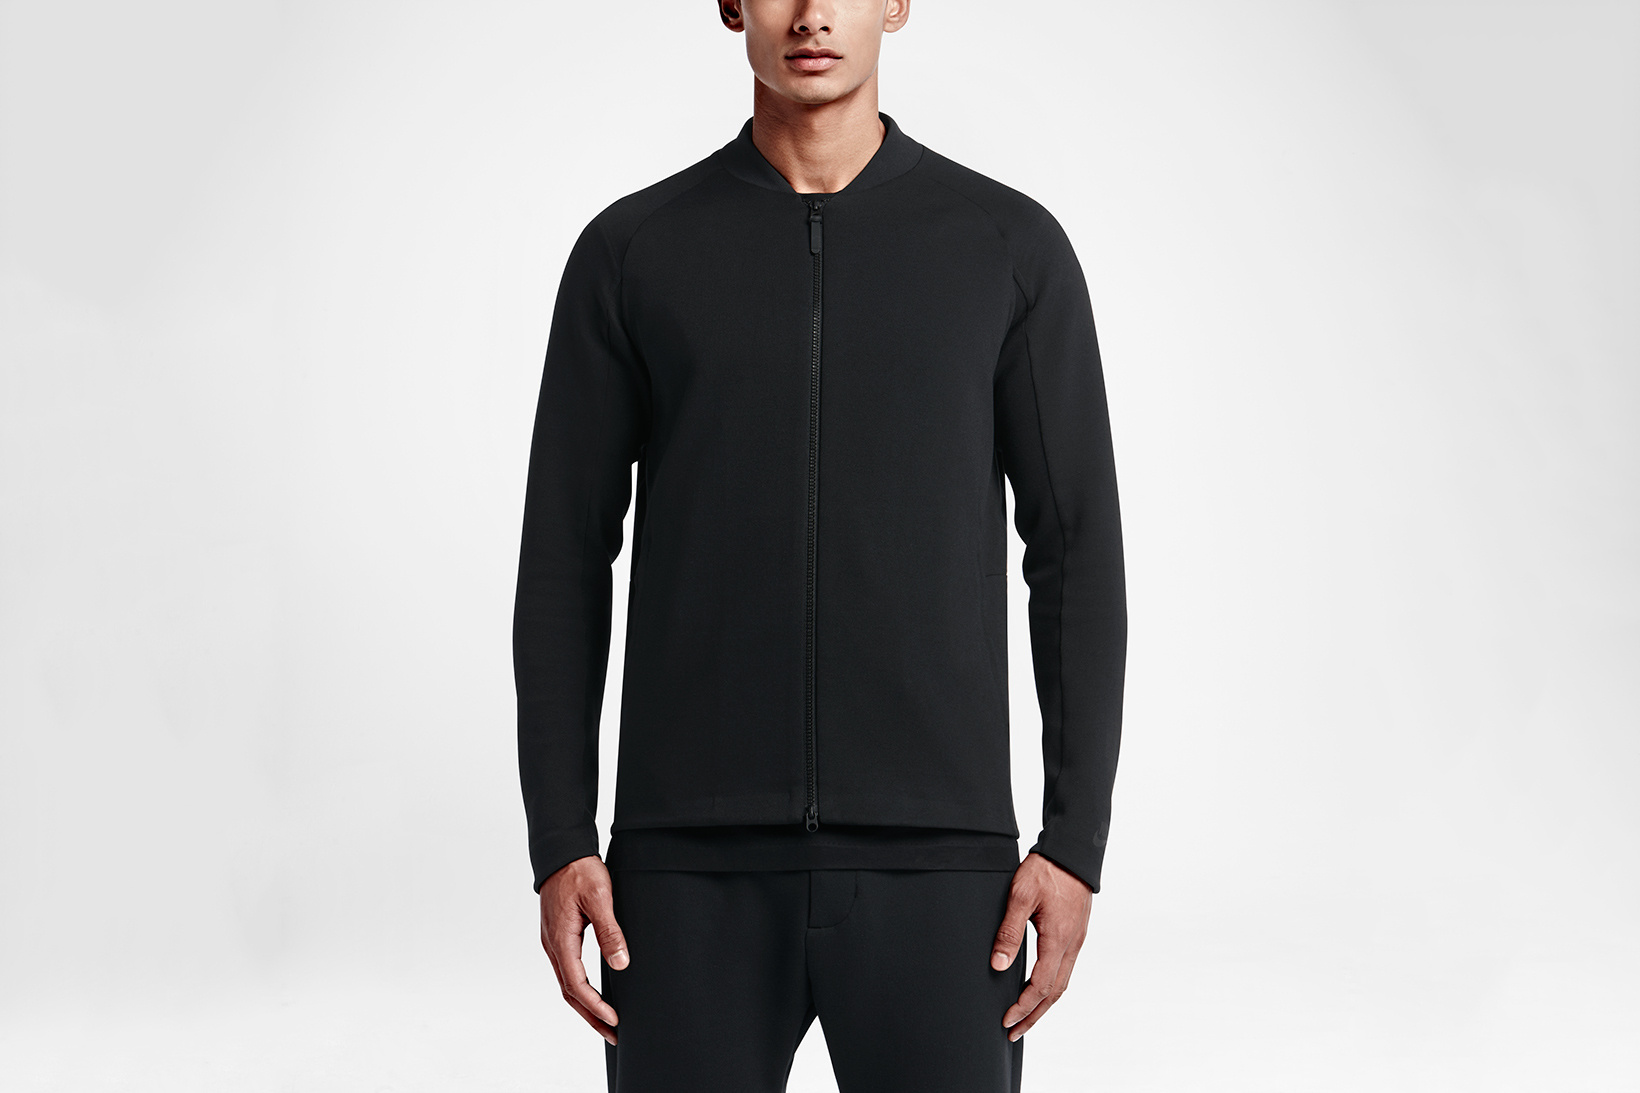 nikelab-transform-jacket-3